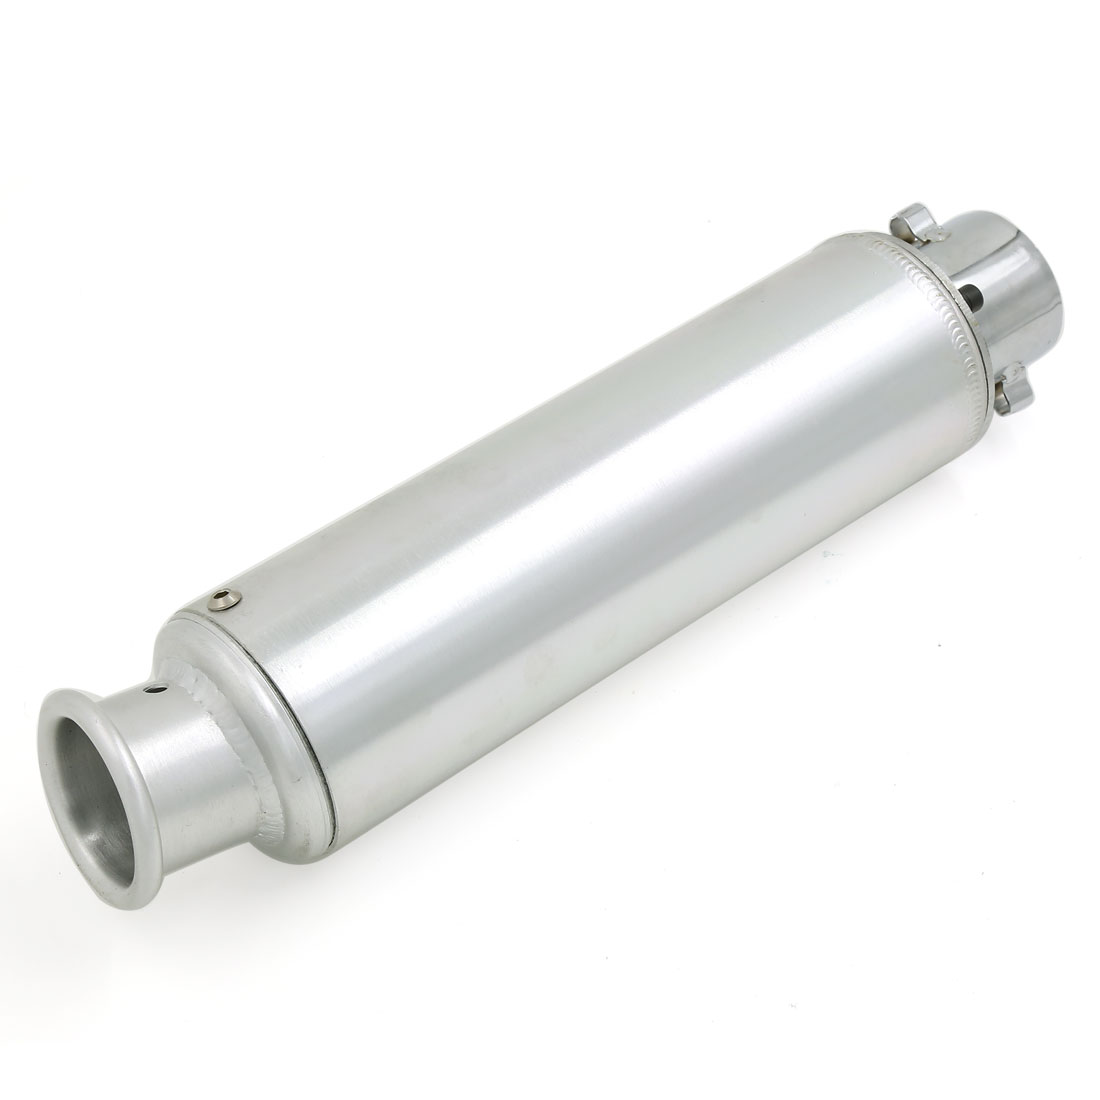 X Autohaux 360Mm Long 50Mm Inlet Round Tip Motorcycle Exhaust Muffler Tail Pipe Sliver Tone